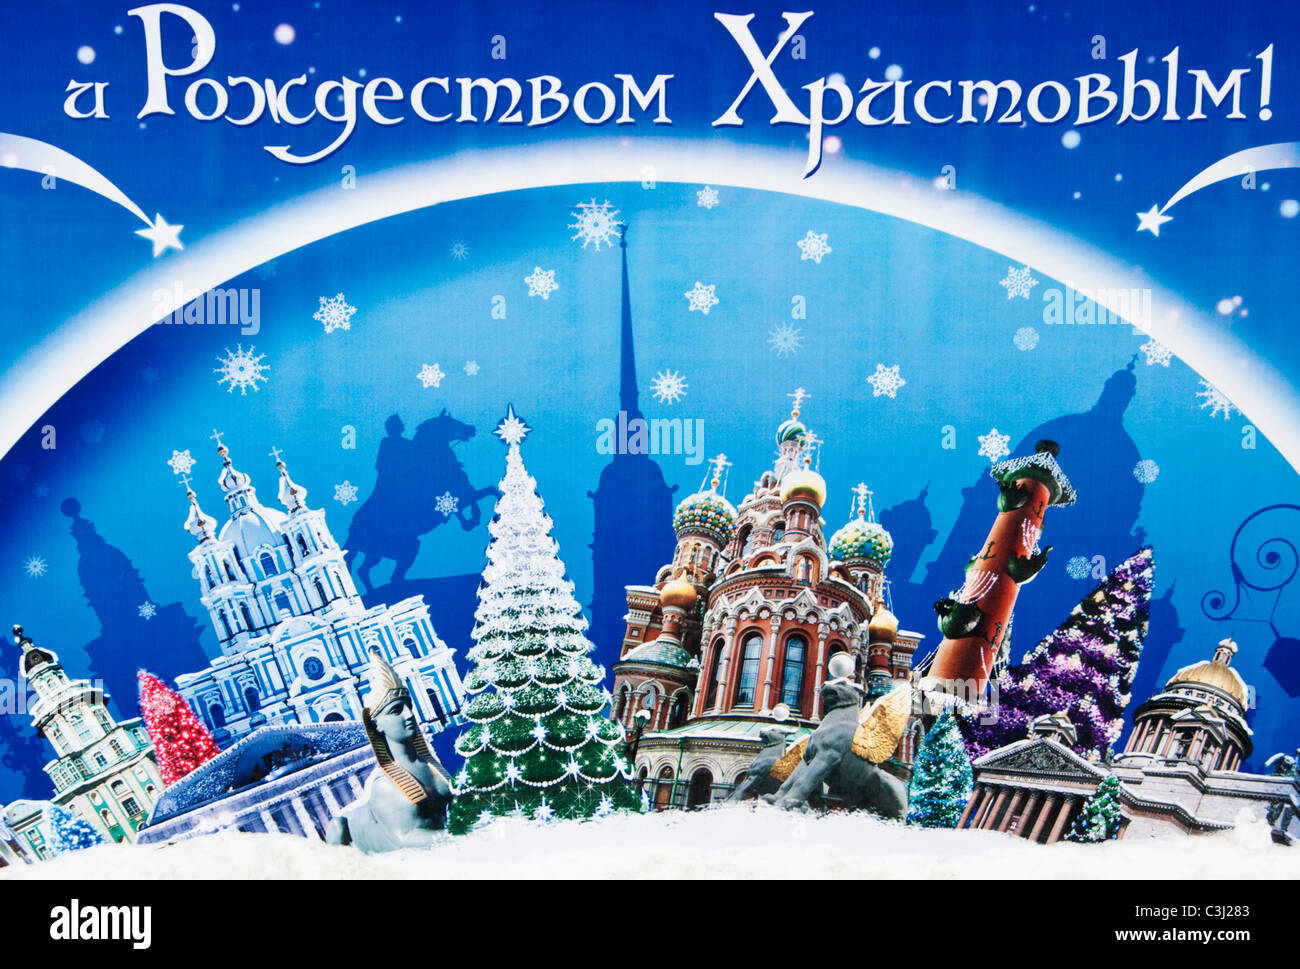 russia st petersburg christmas stockfotos russia st petersburg christmas bilder alamy. Black Bedroom Furniture Sets. Home Design Ideas